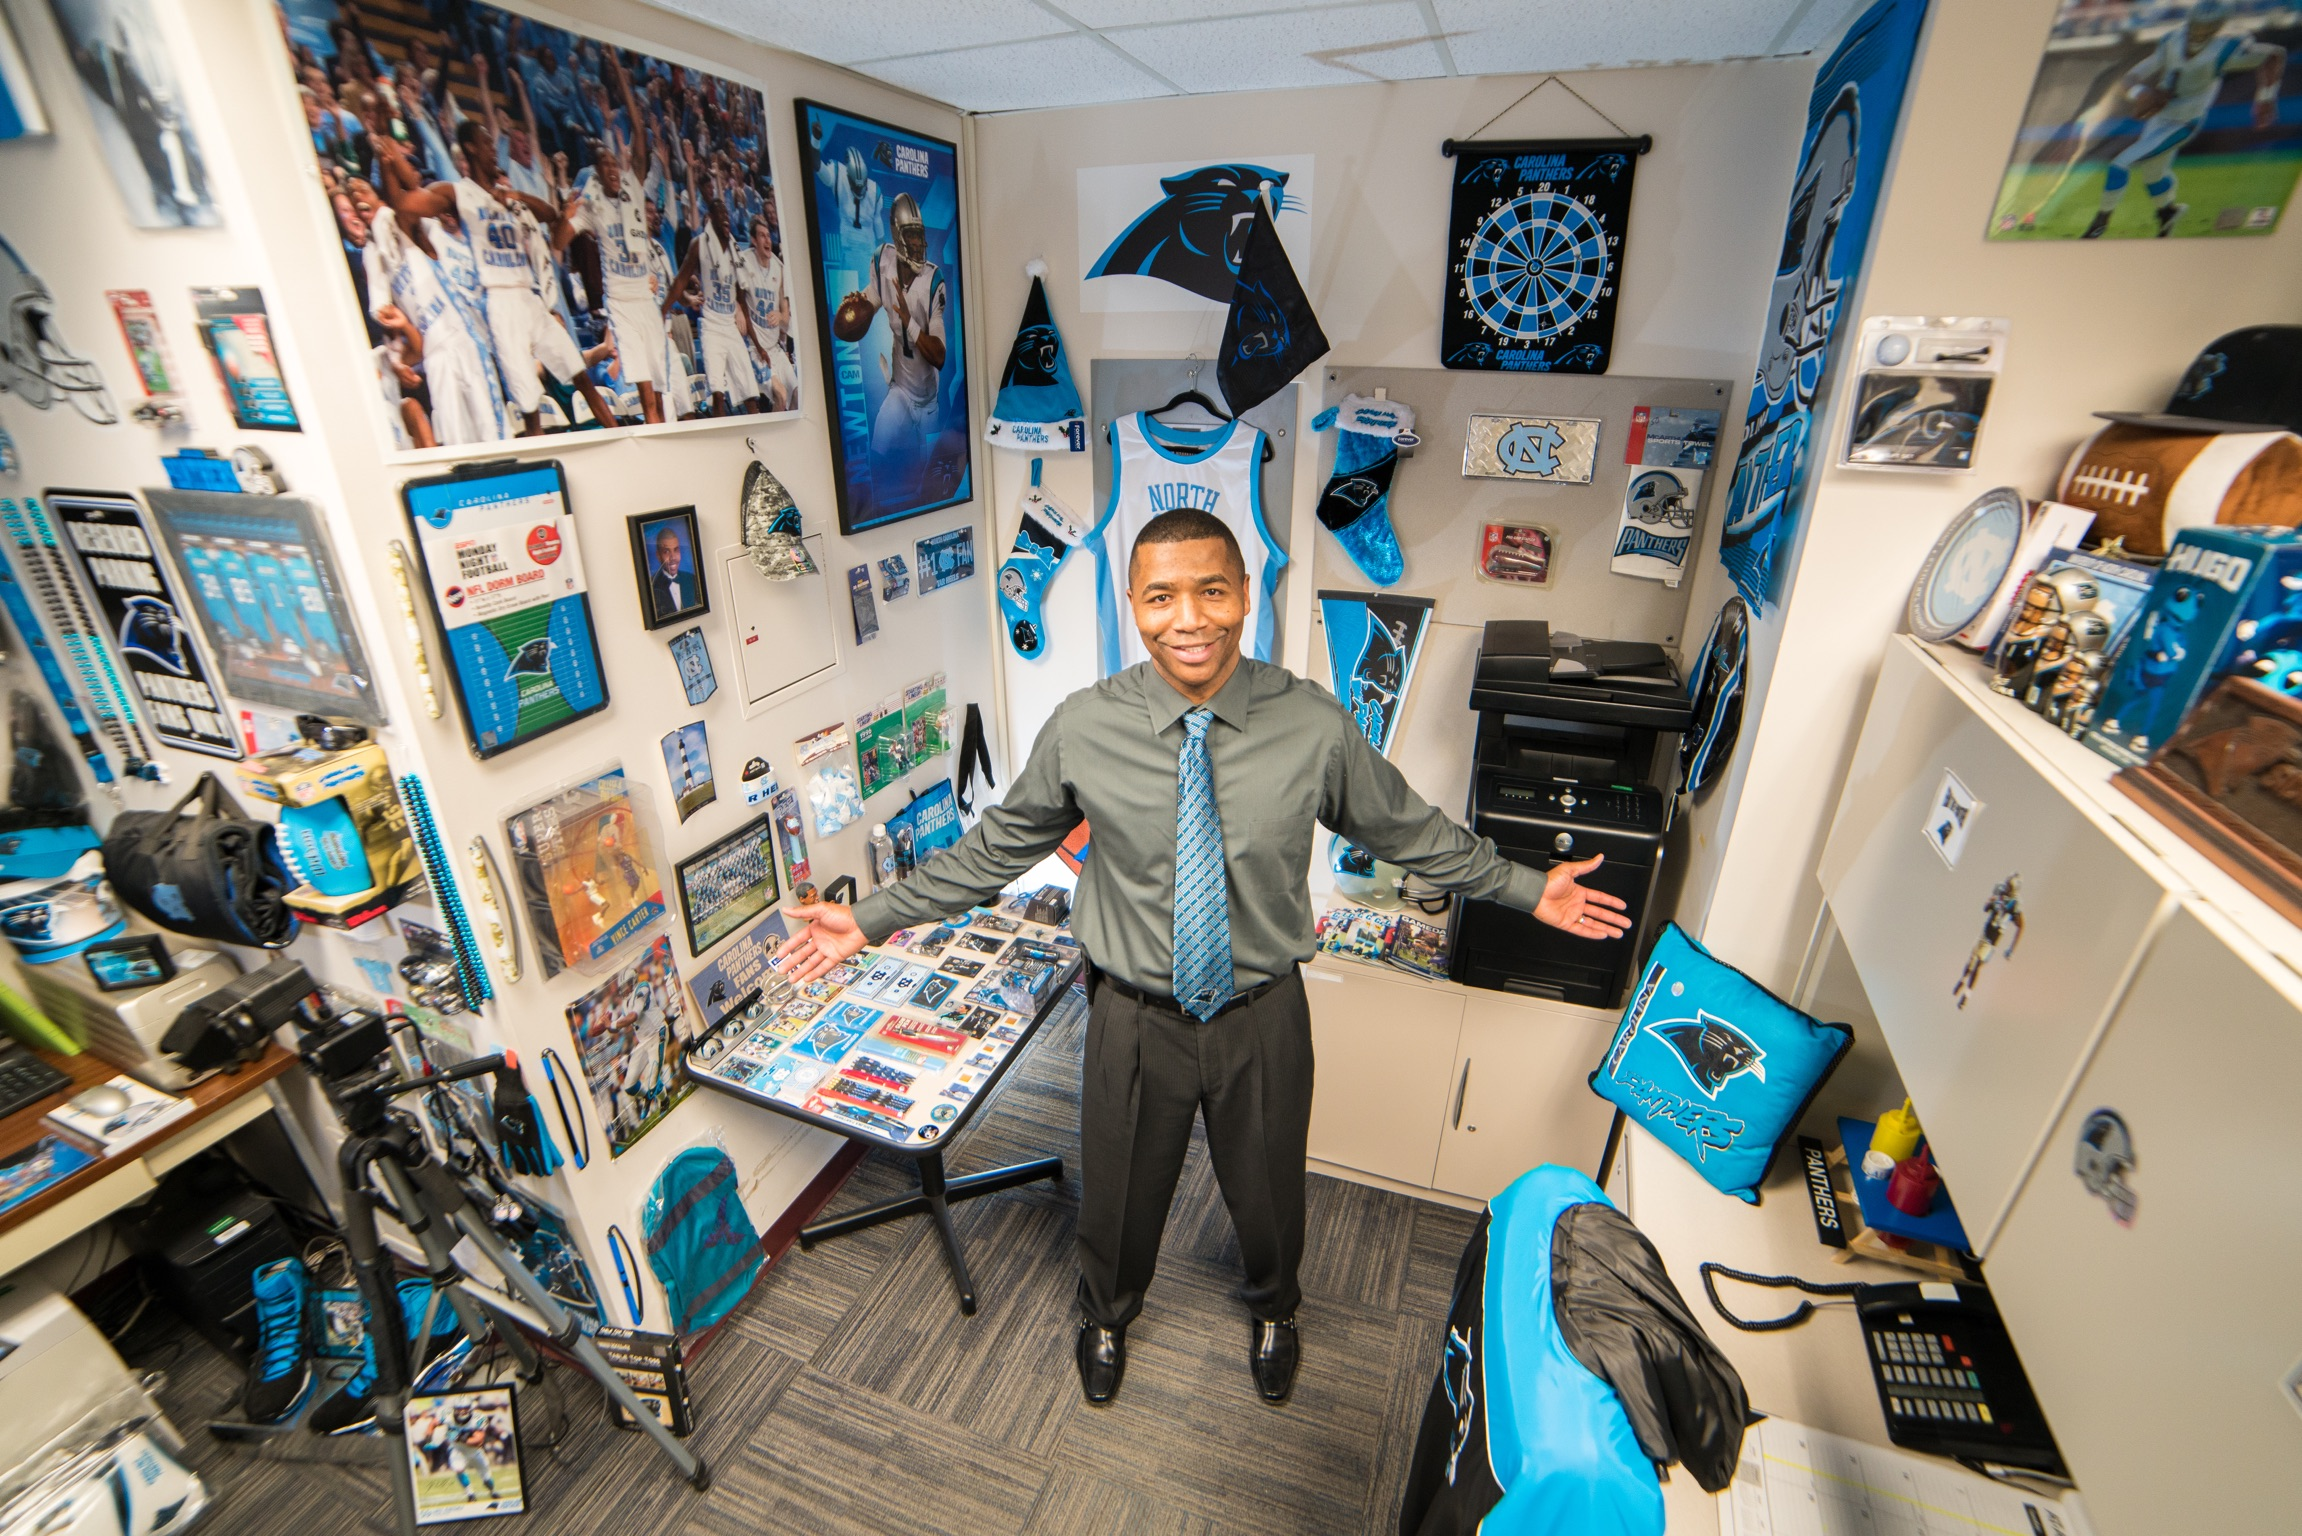 DINFOS staffer cheerfully shares his love for the Carolina Panthers